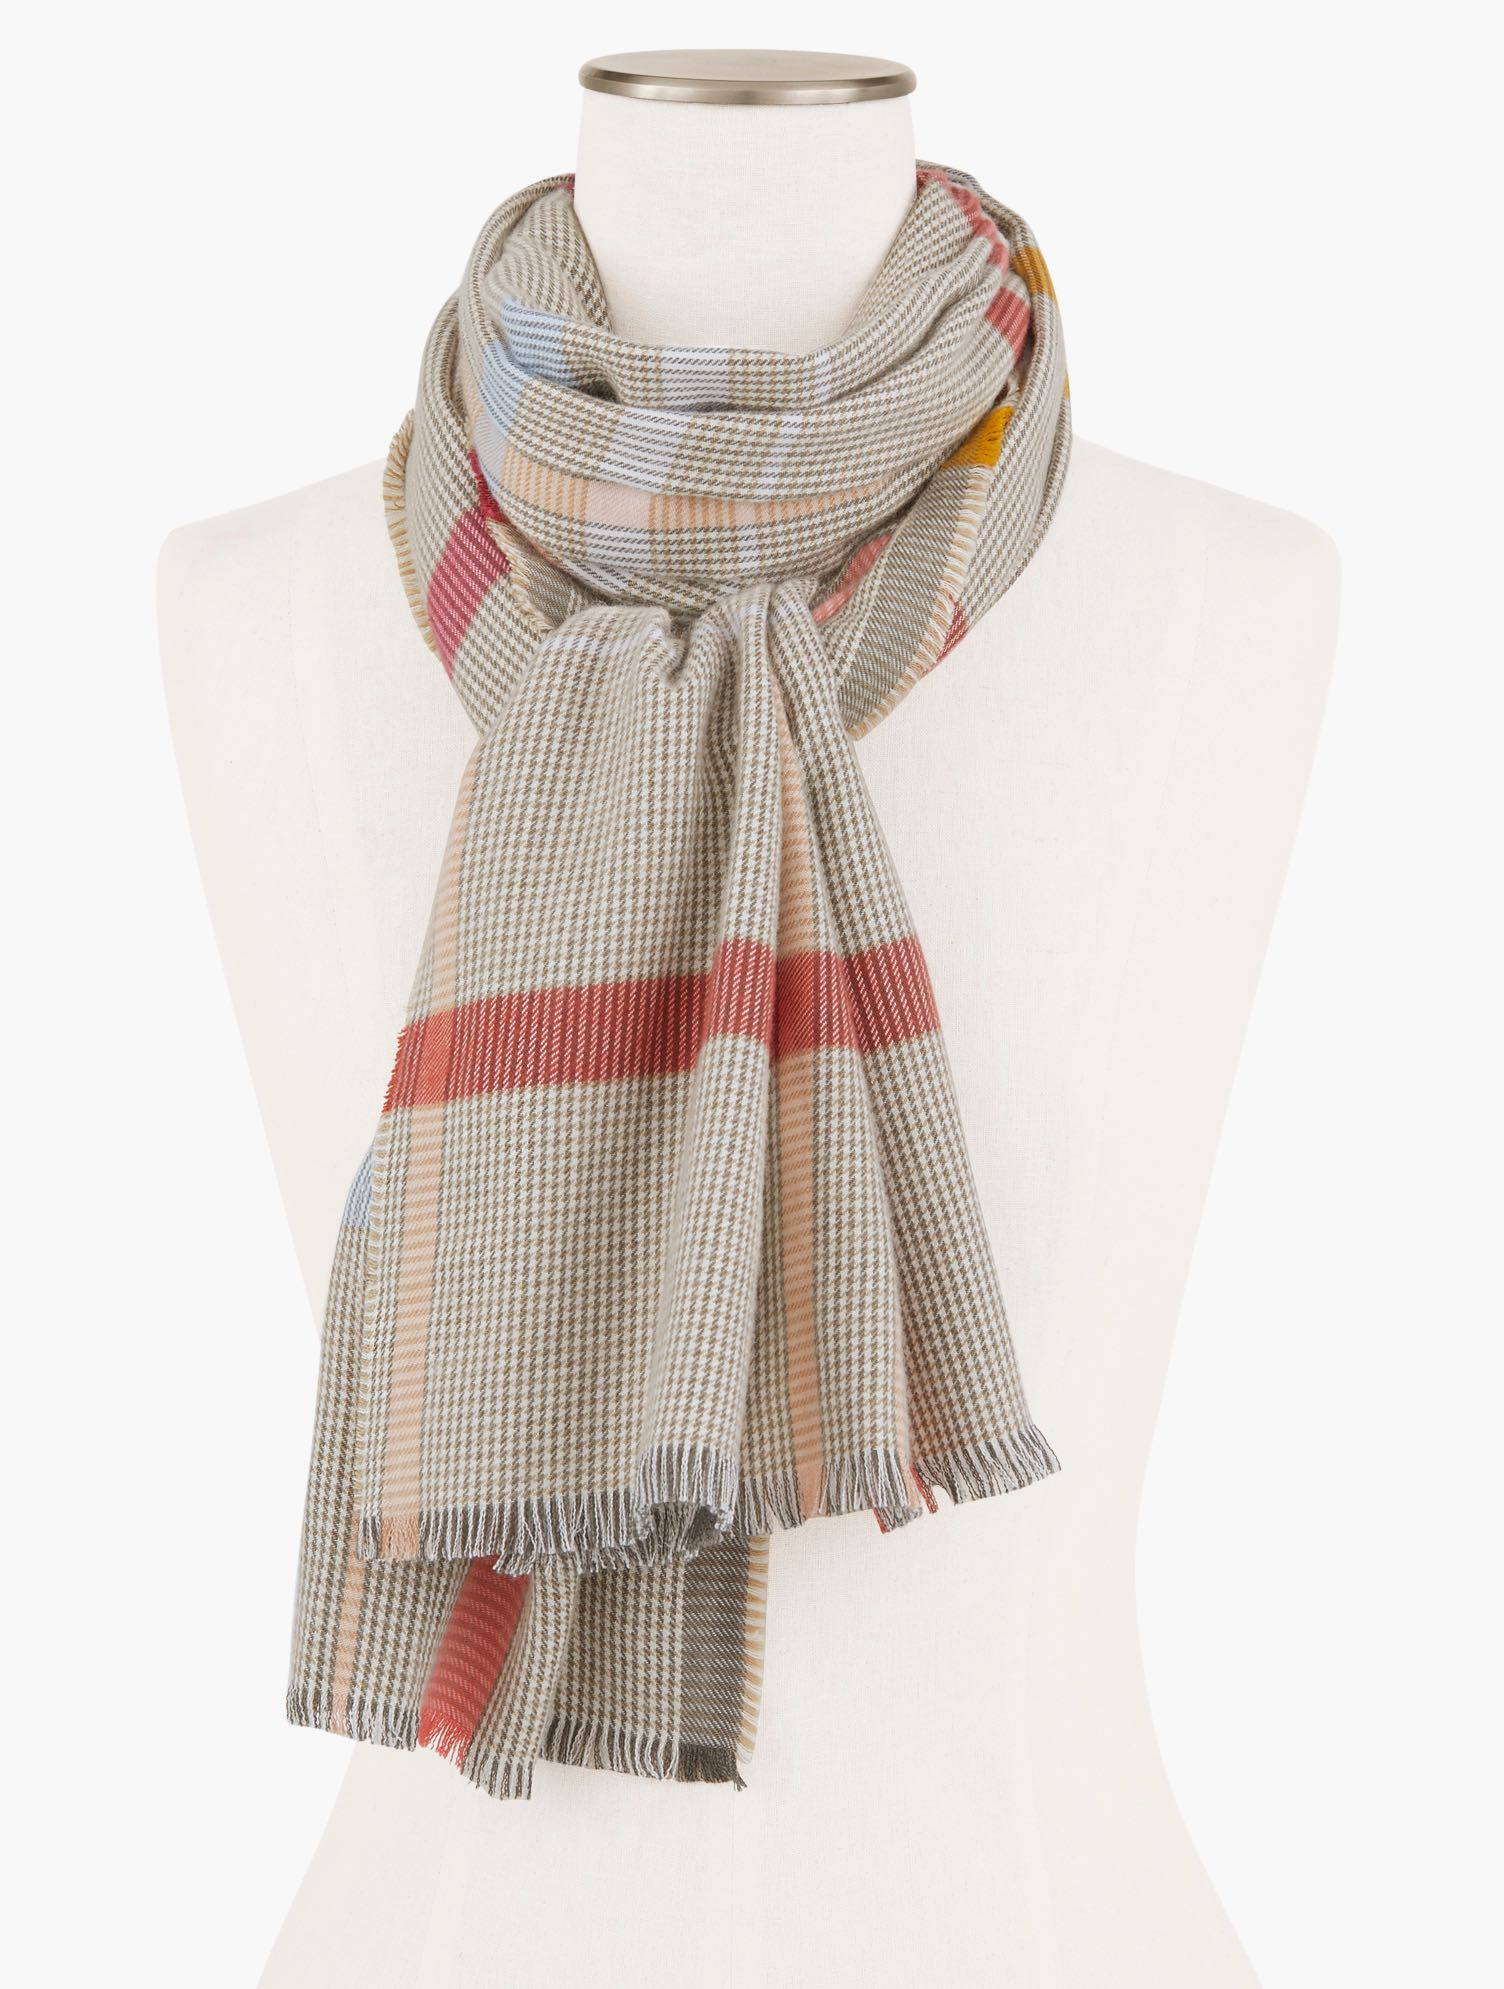 Wrap yourself in cozy warmth with our plaid oblong scarf. The perfect layer when there\\\'s a chill in the air. Features Oblong ScarfImported Fit: 27x72 inches Material: 54% Cotton, 46% Viscose Care: Hand Wash, Line Dry Cozy Plaid Oblong Scarf - Ivory - 001 - 100% Cotton Talbots